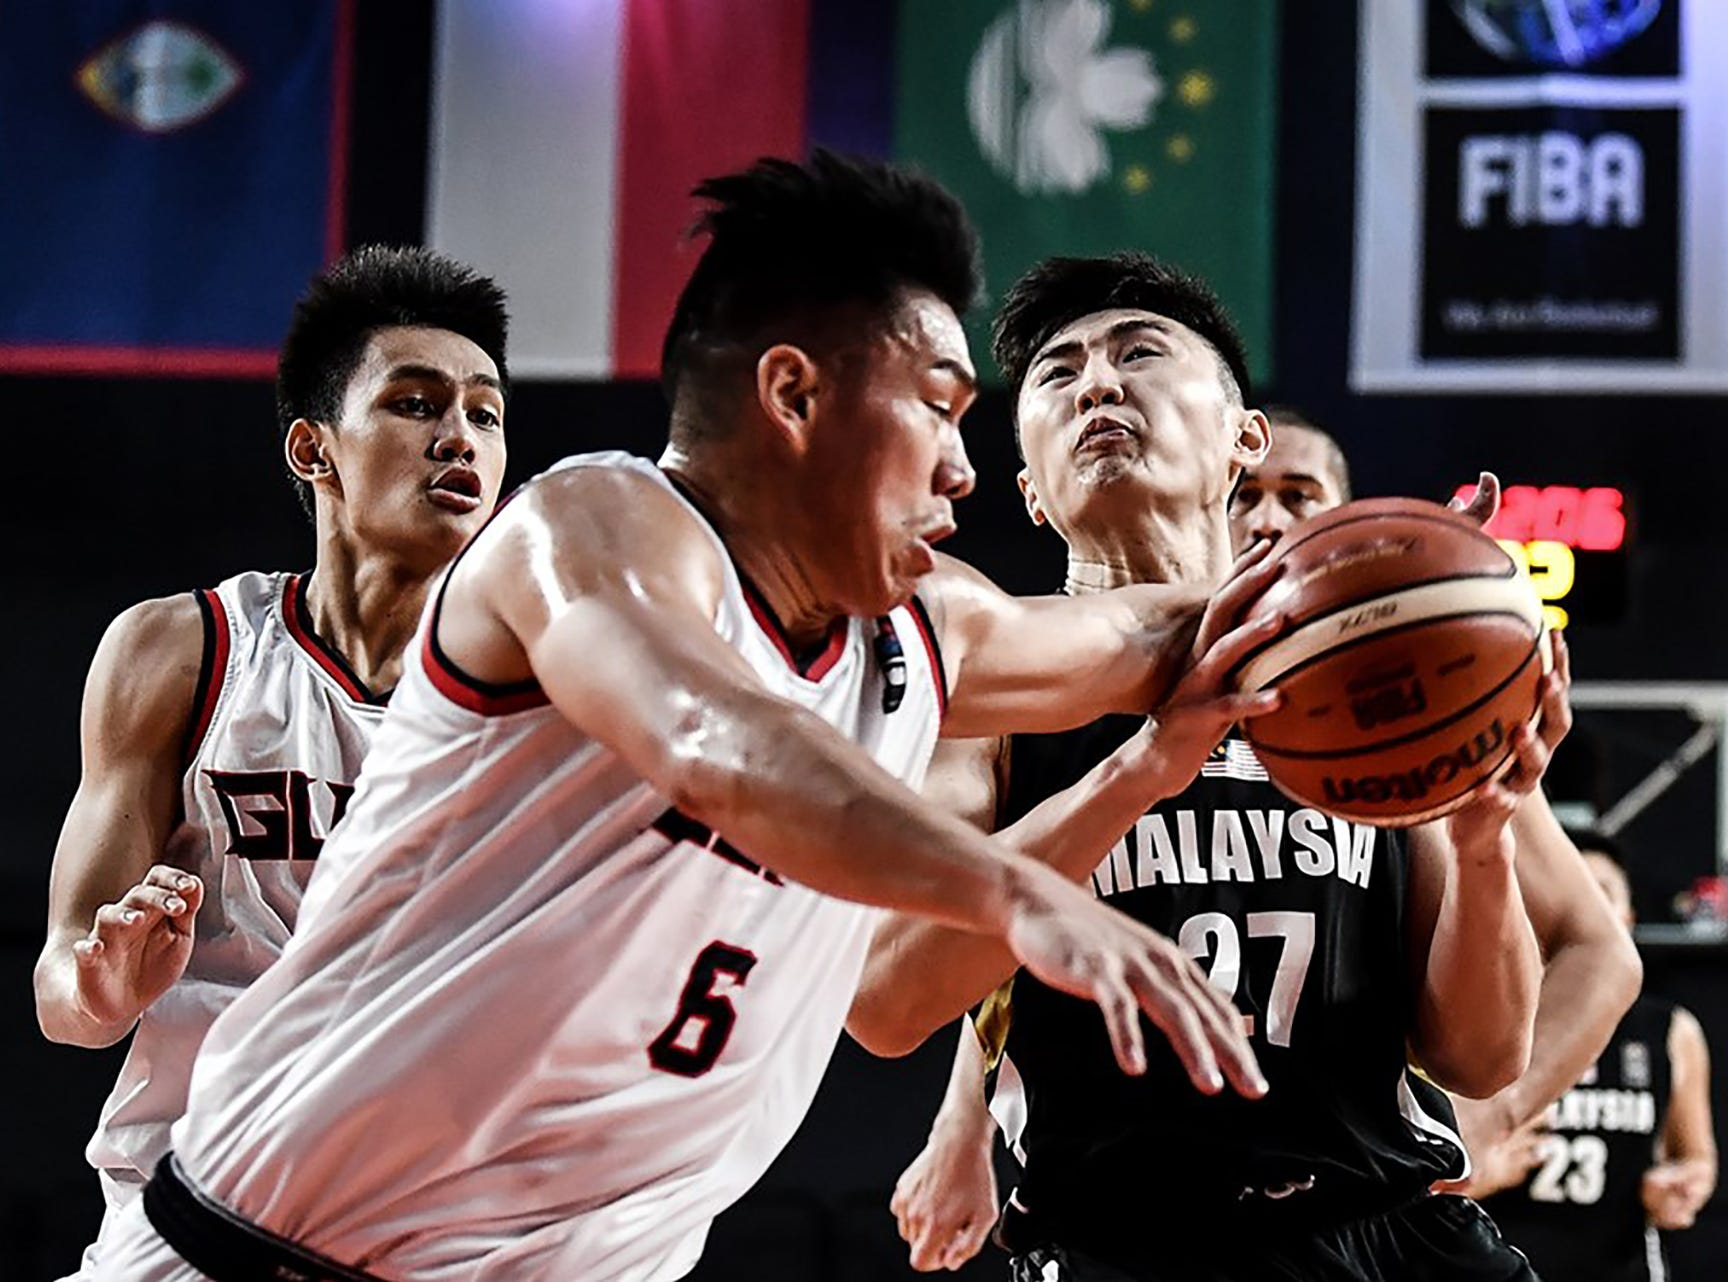 Earvin Jose prevents a Malay layup during his team's final game against Malaysia. Guam won 101-78 to complete a 6-0 sweep of all teams in  Asia's Eastern Division and move on to the qualifier round of the FIBA Asia Cup 2021